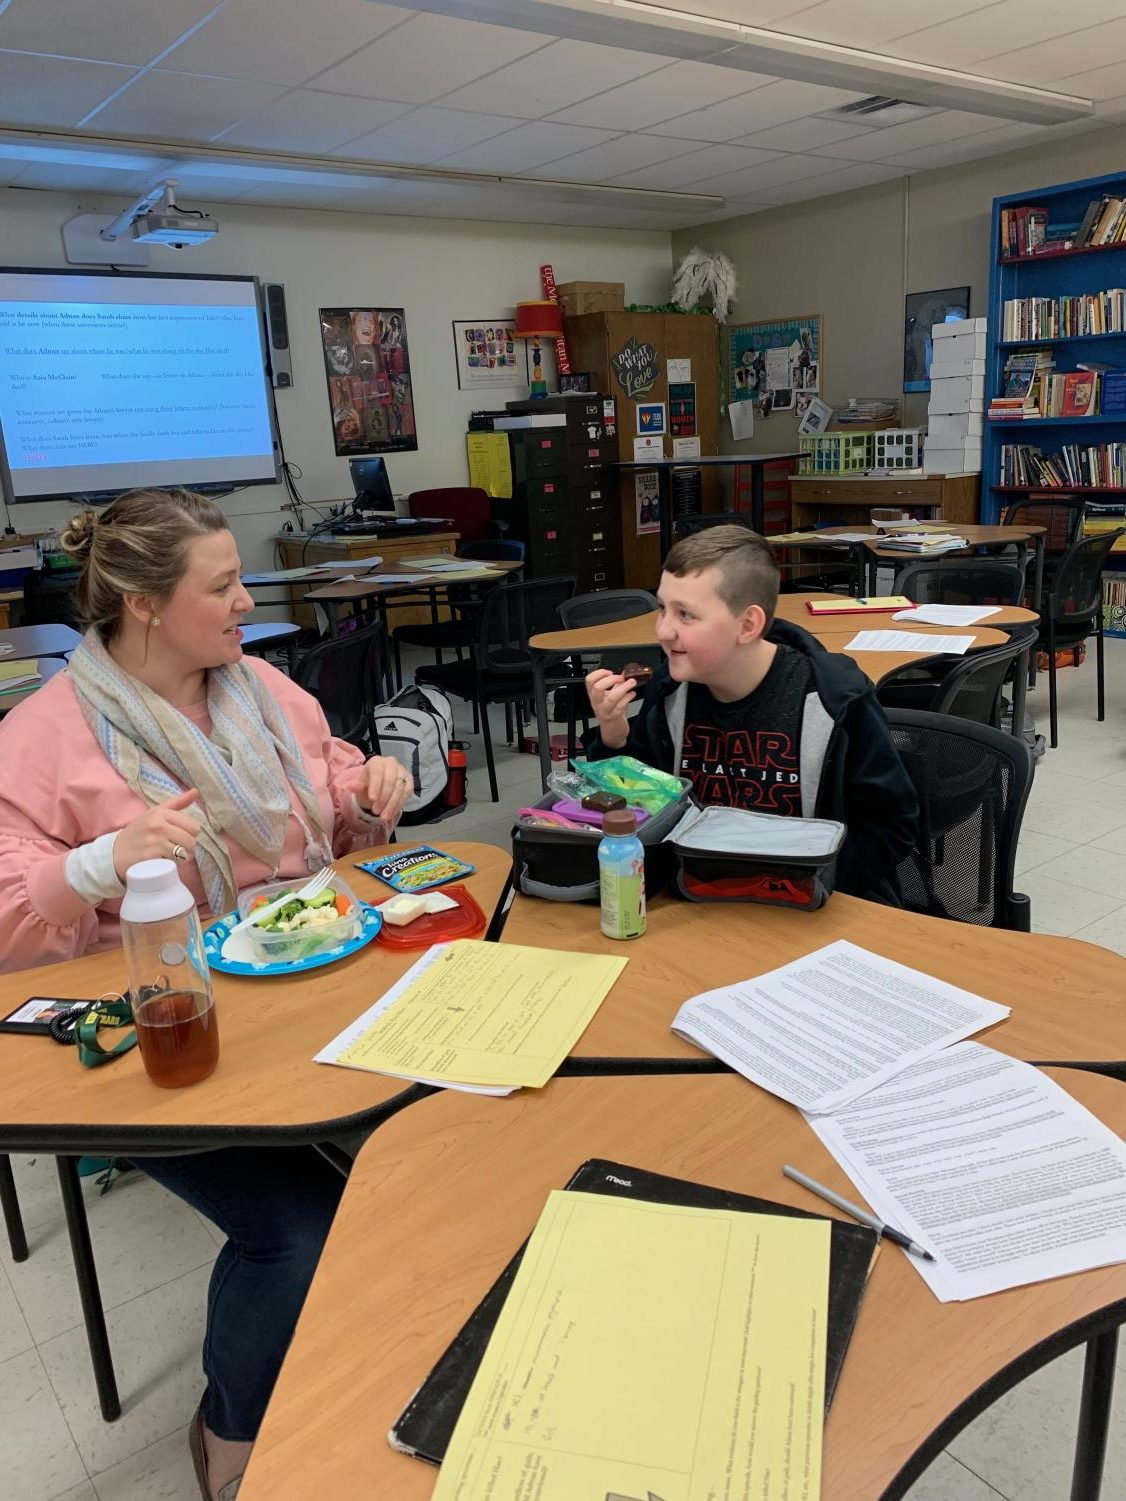 Teacher Christina Langton eats with her son Gabe Langton. G. Langton is a fifth grade student at Pierce Elementary School and his school day was cancelled on Dec. 4 due to icy roads leaving him at Kennedy while C. Langton is on duty.